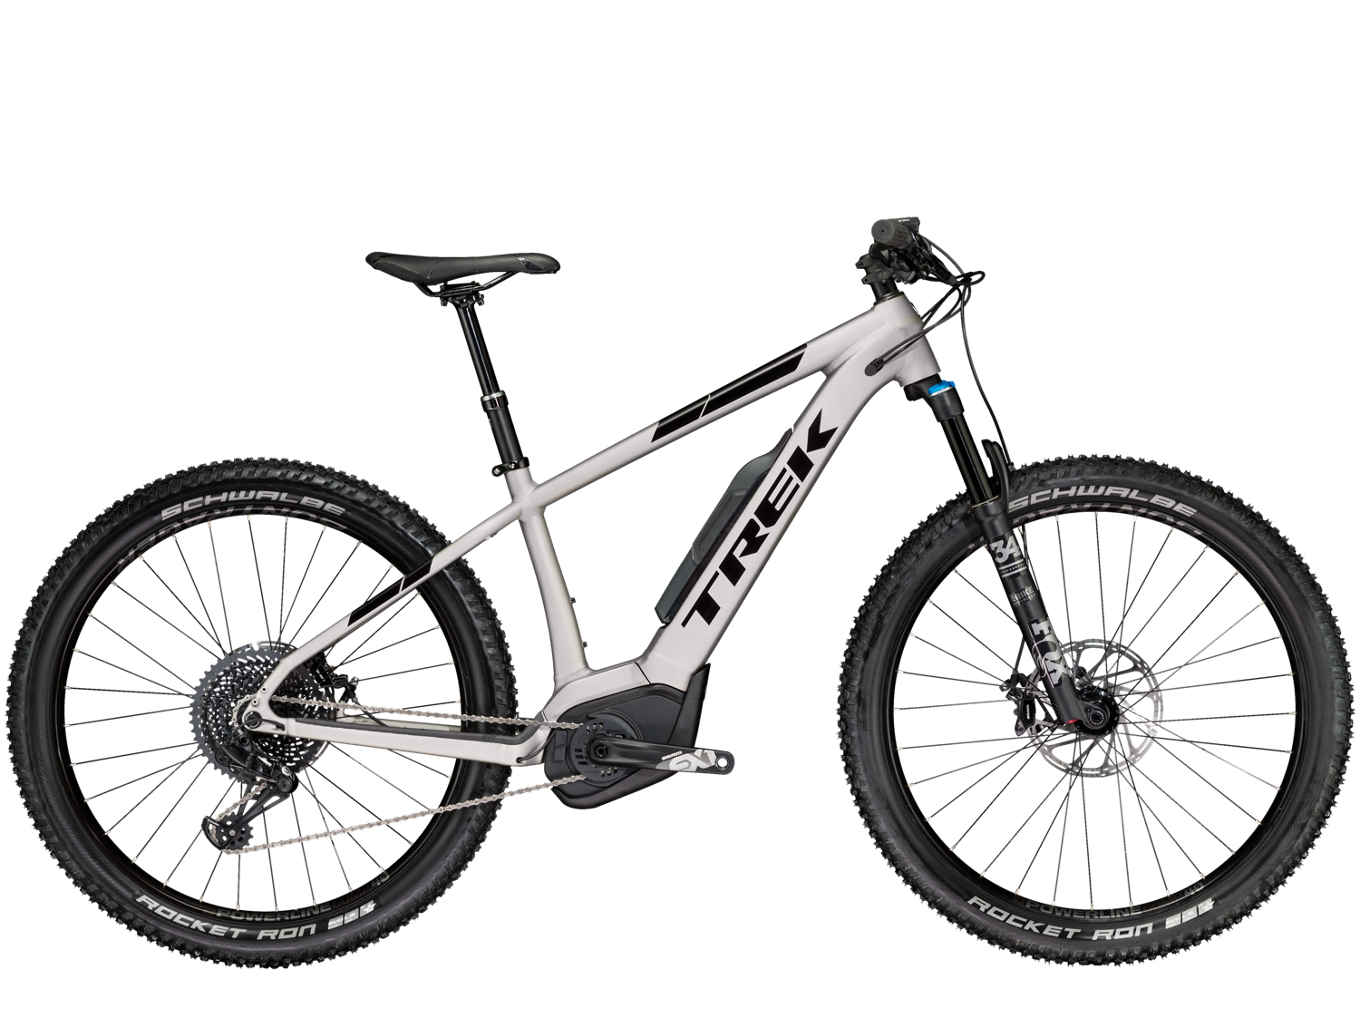 Trek 4900 For Sale - Powerfly 9